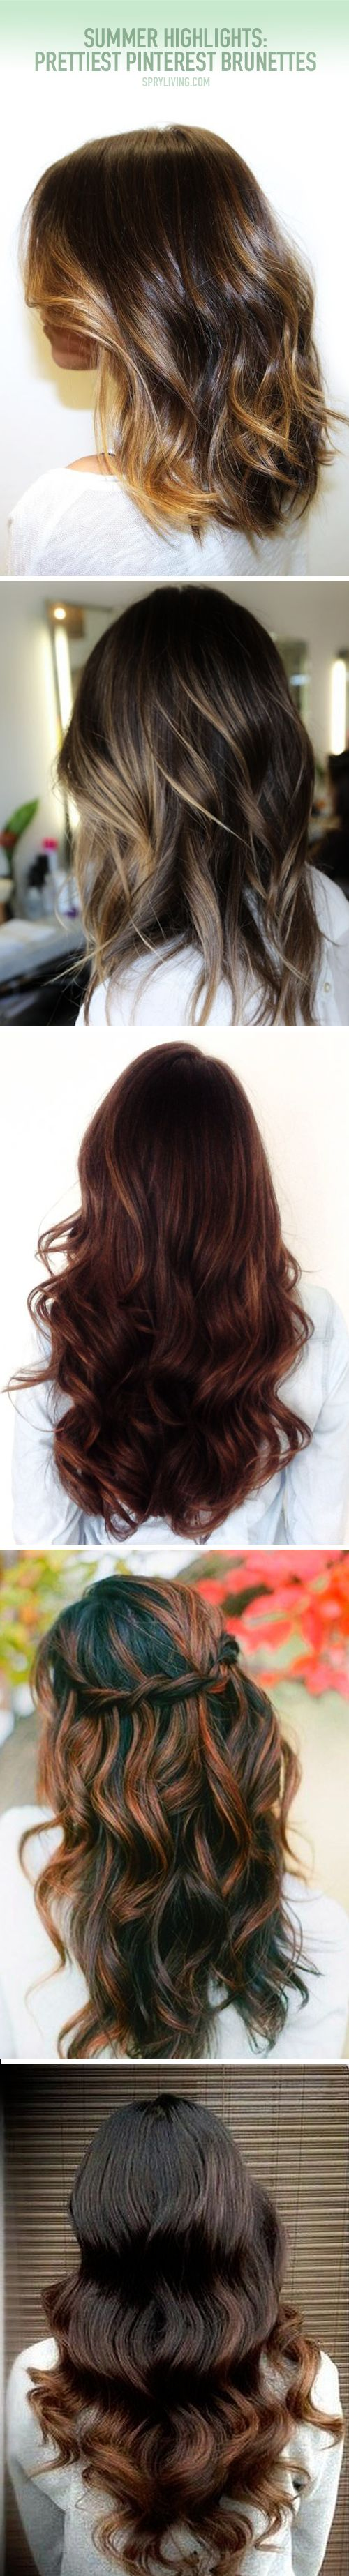 Brunettes | The 15 Prettiest Summer Highlights